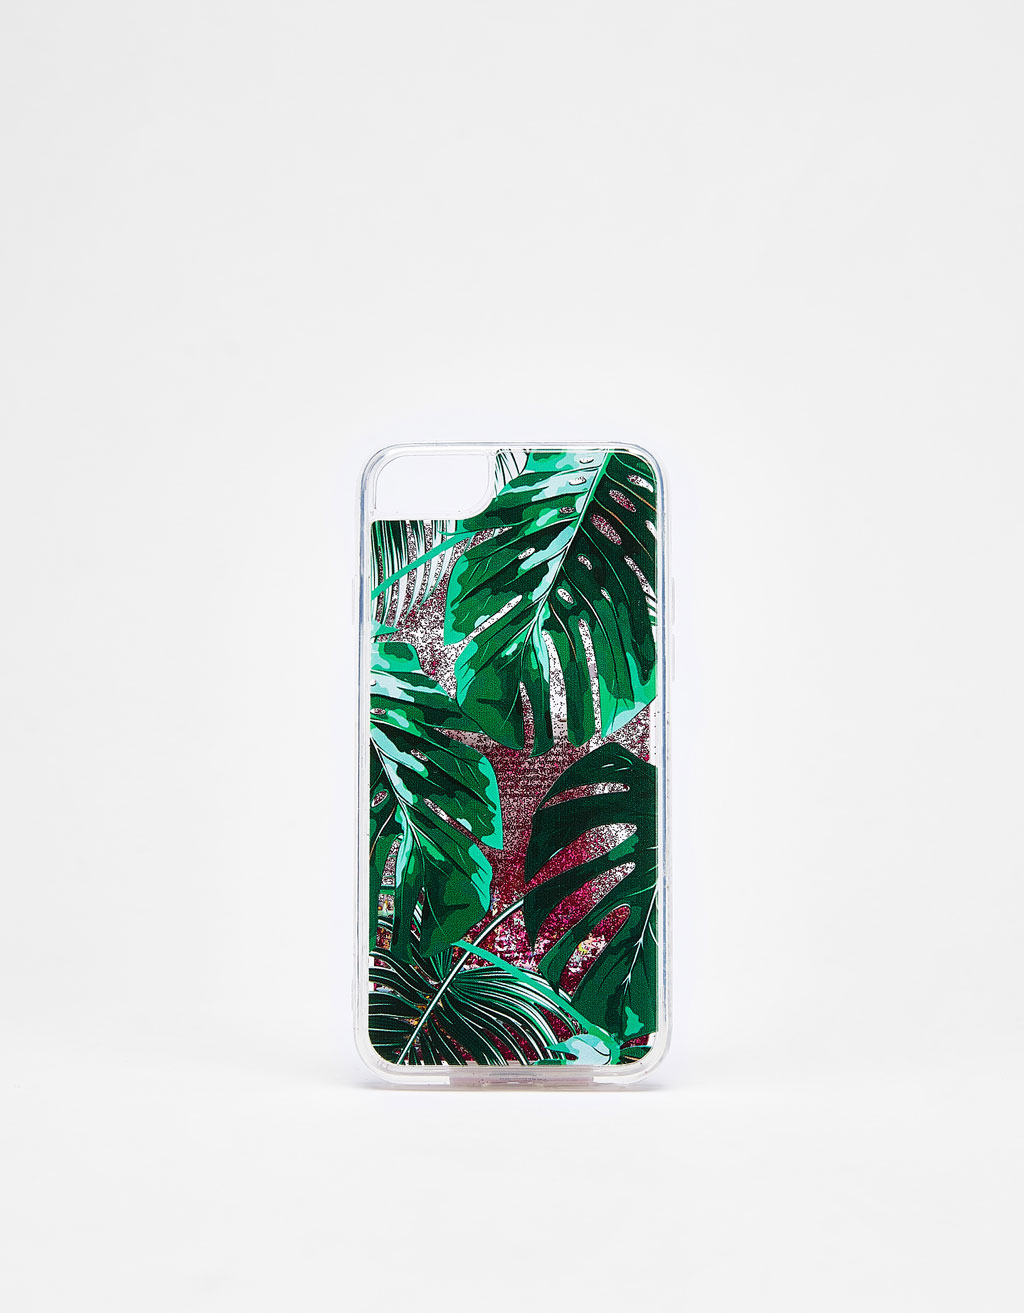 Coque tropicale iPhone 6/6s/7/8